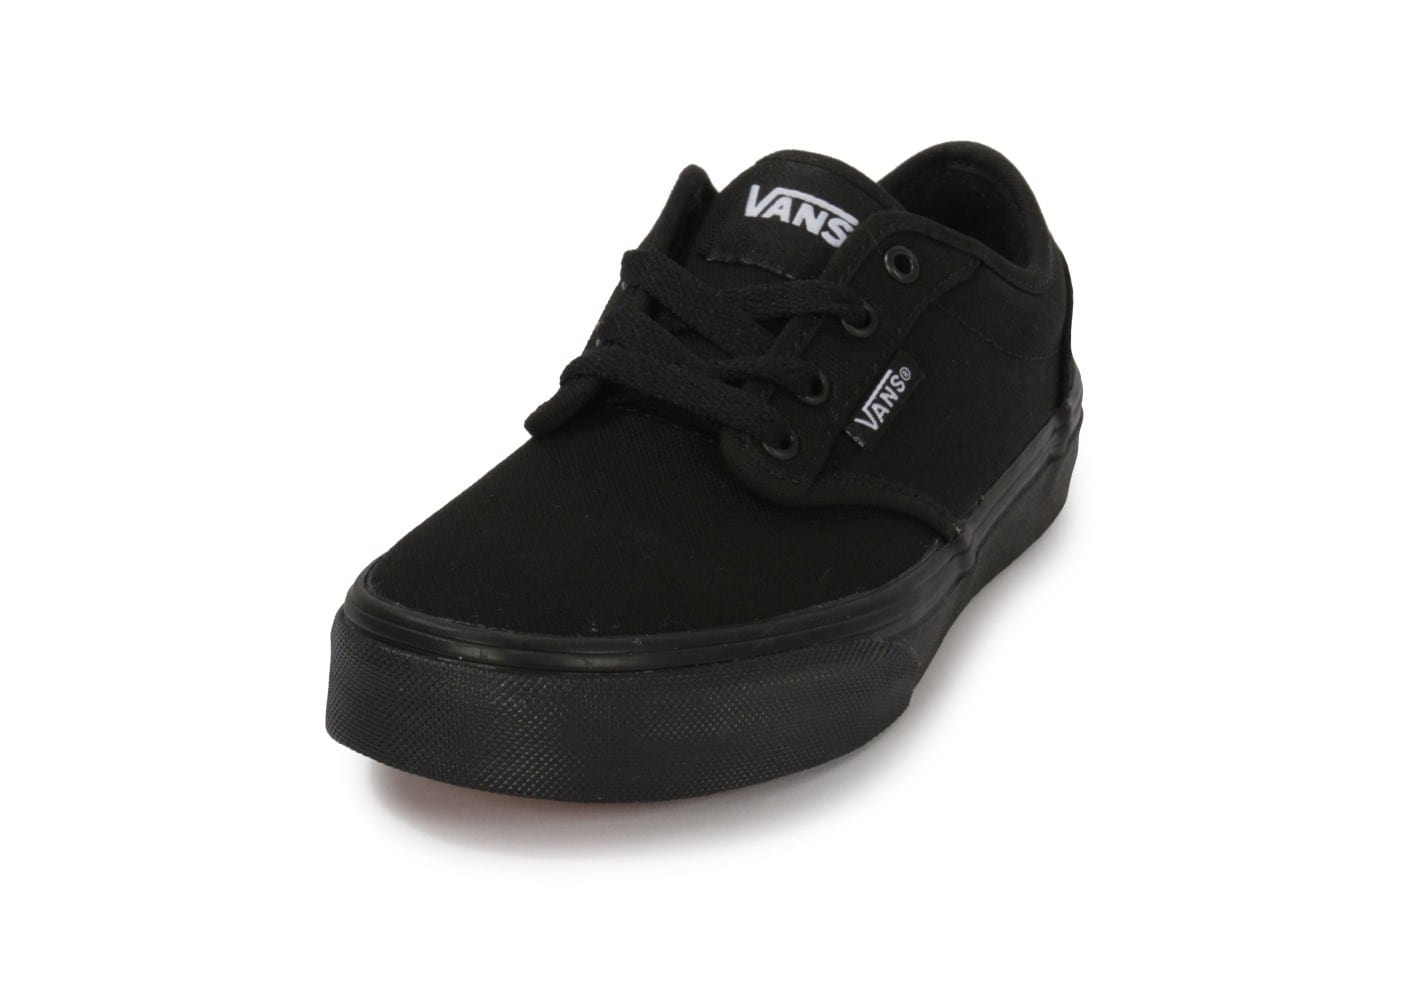 vans atwood enfant noire chaussures chaussures chausport. Black Bedroom Furniture Sets. Home Design Ideas